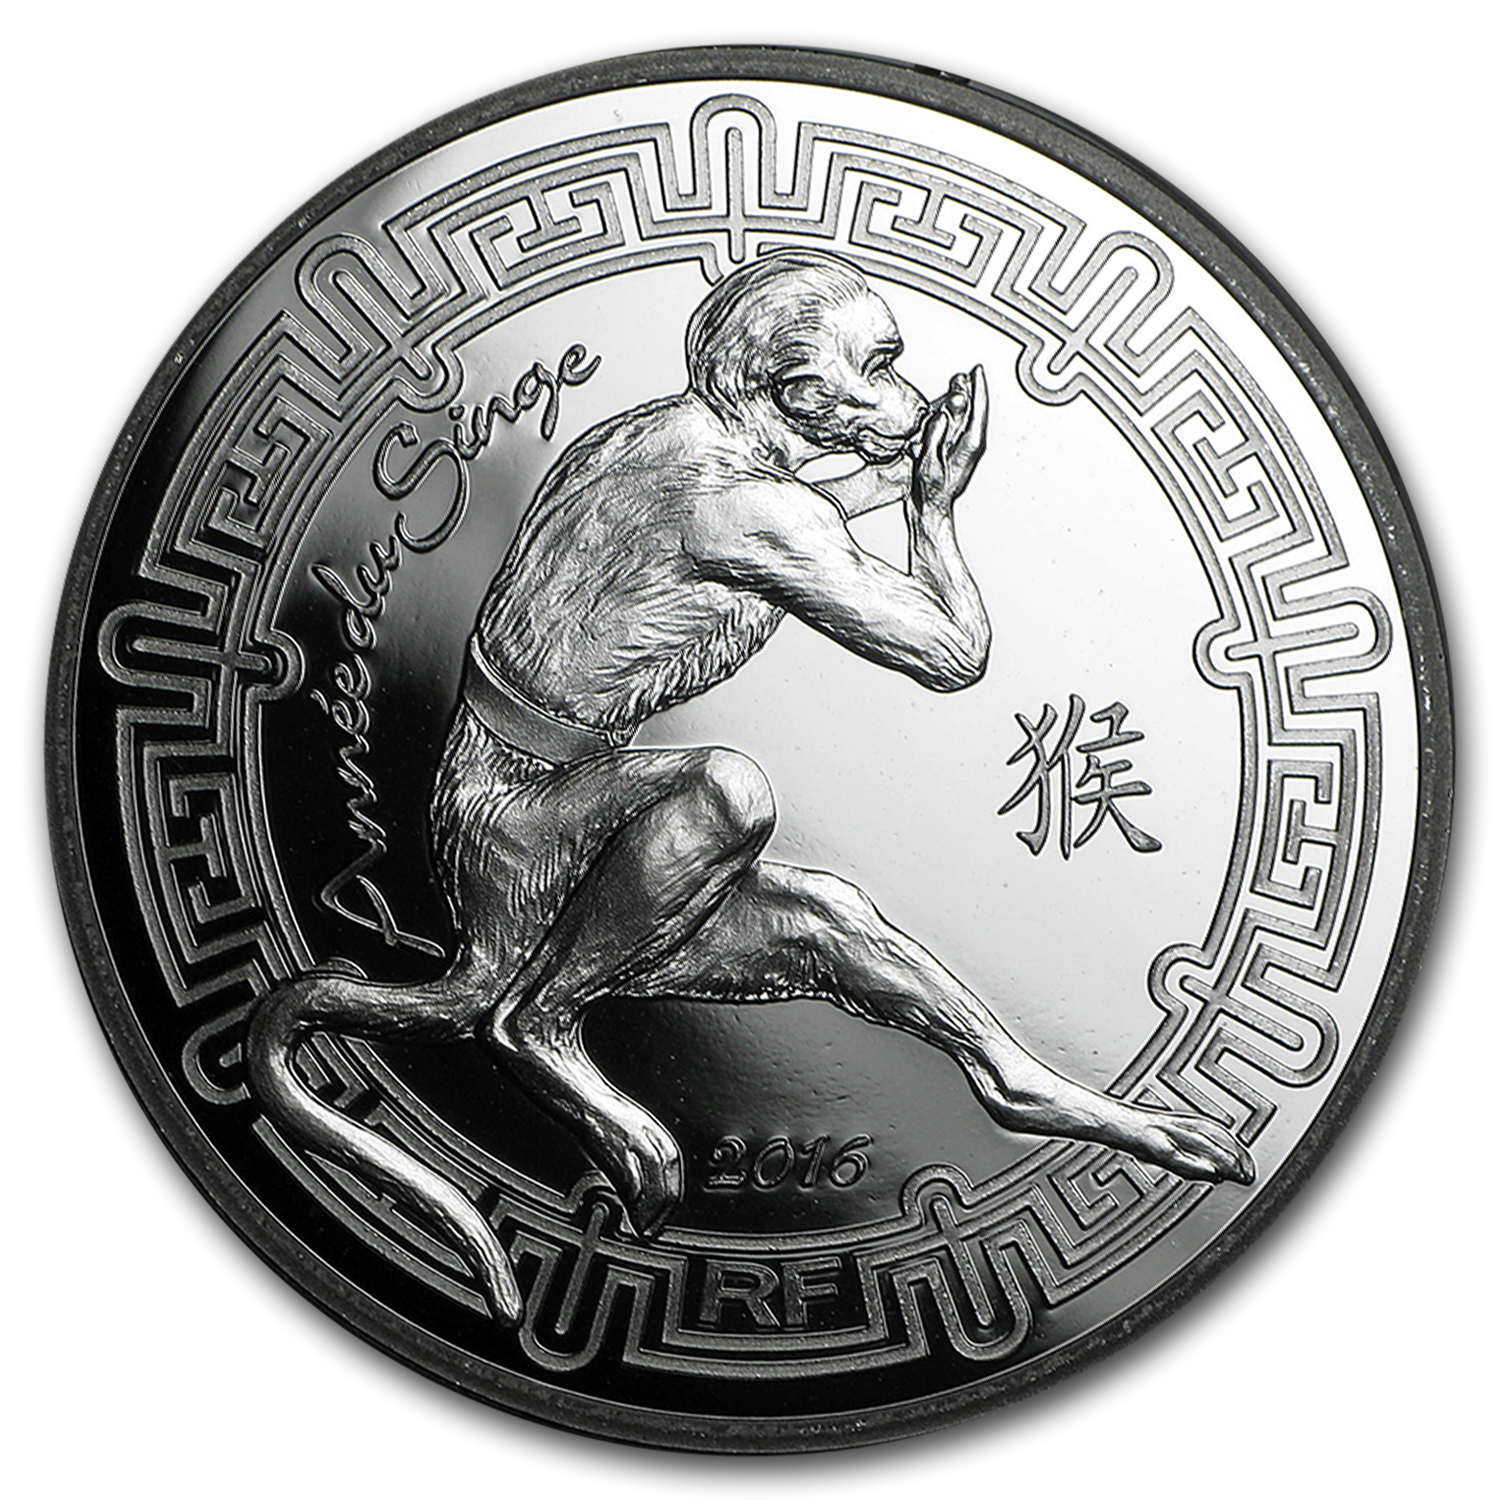 2016 France Silver €10 Year of the Monkey Proof (Lunar Series)